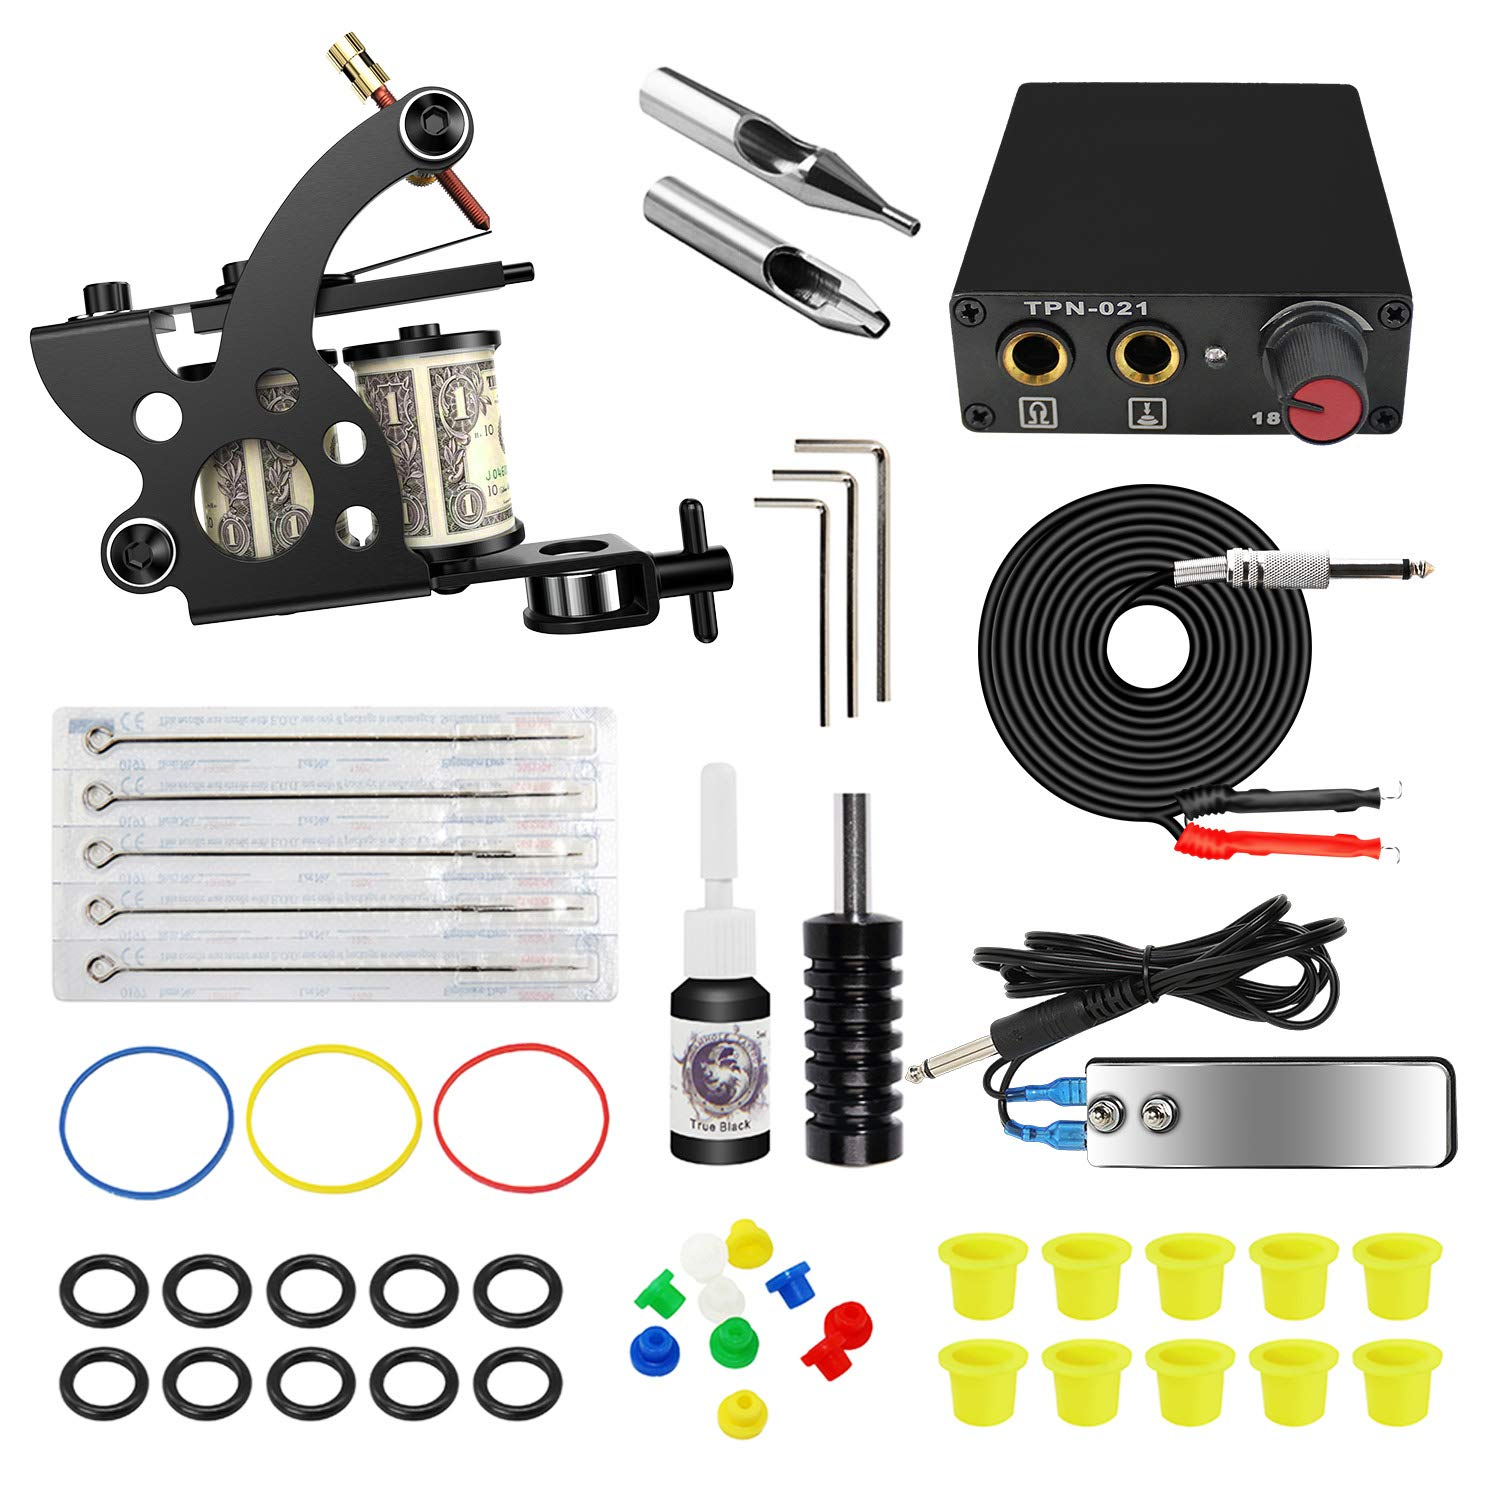 ITATOO Complete Tattoo Kit for Beginners 1 Pro Tattoo Machine Review